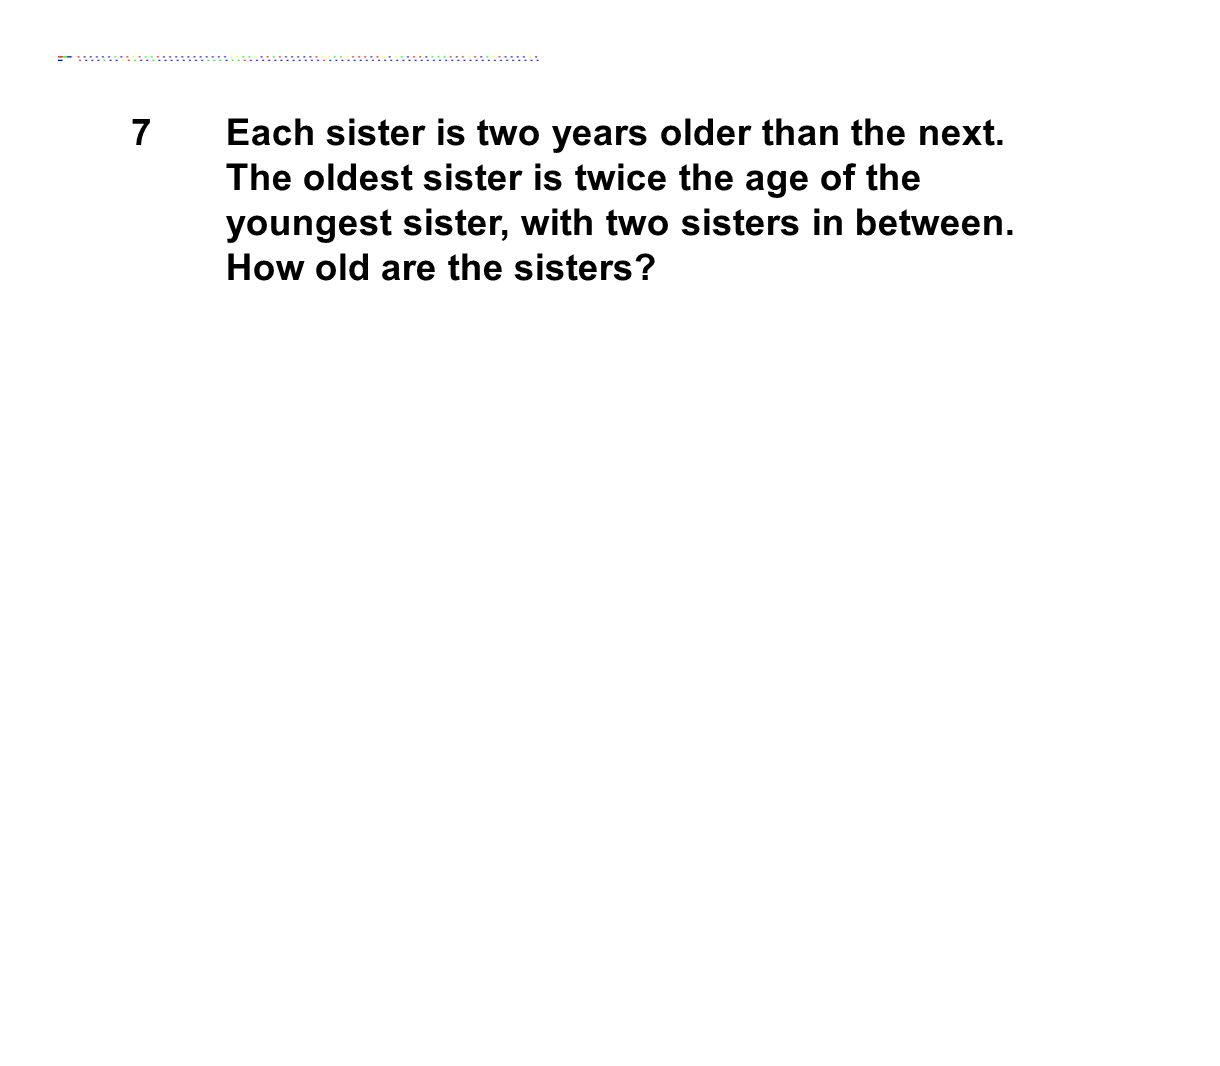 7Each sister is two years older than the next. The oldest sister is twice the age of the youngest sister, with two sisters in between. How old are the